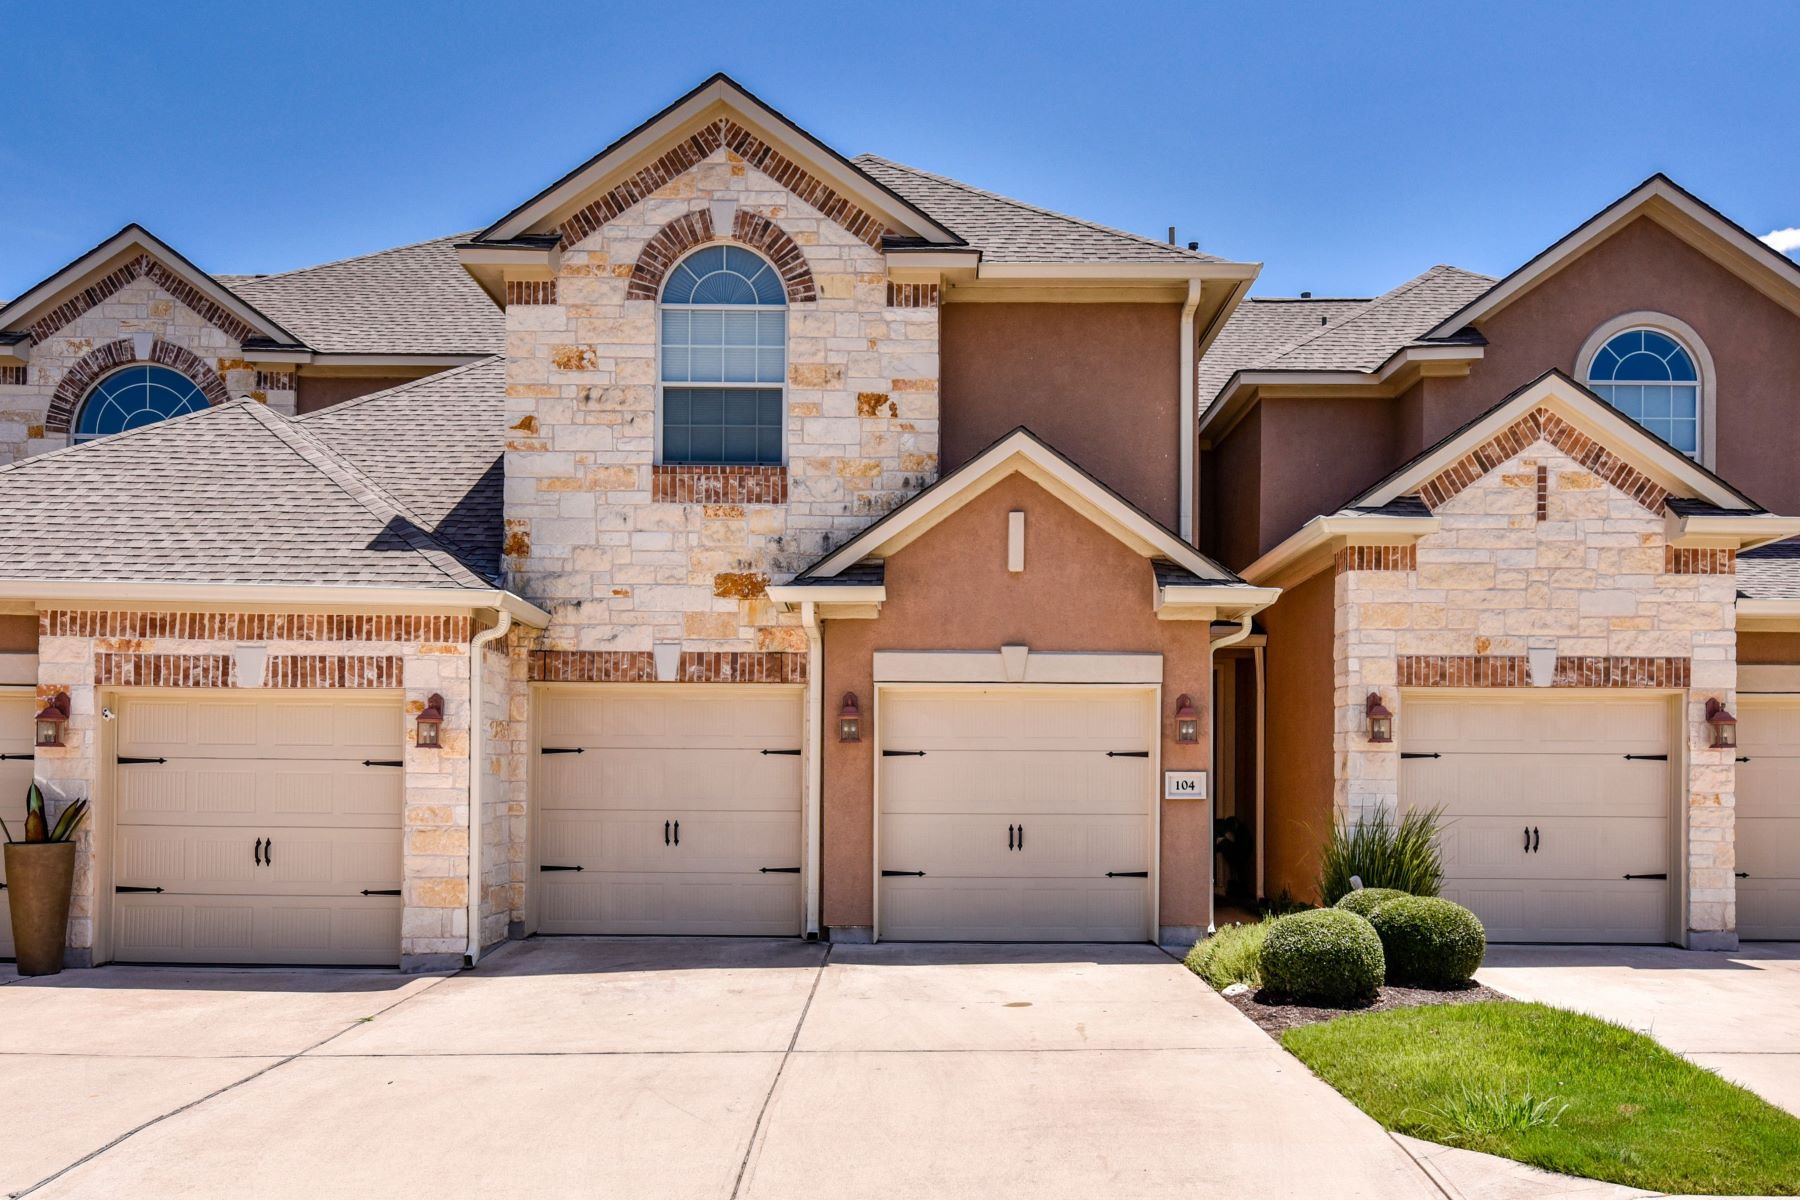 Condominiums for Sale at 104 Perpetuation Drive, Lakeway, TX 78734 104 Perpetuation Drive Lakeway, Texas 78734 United States